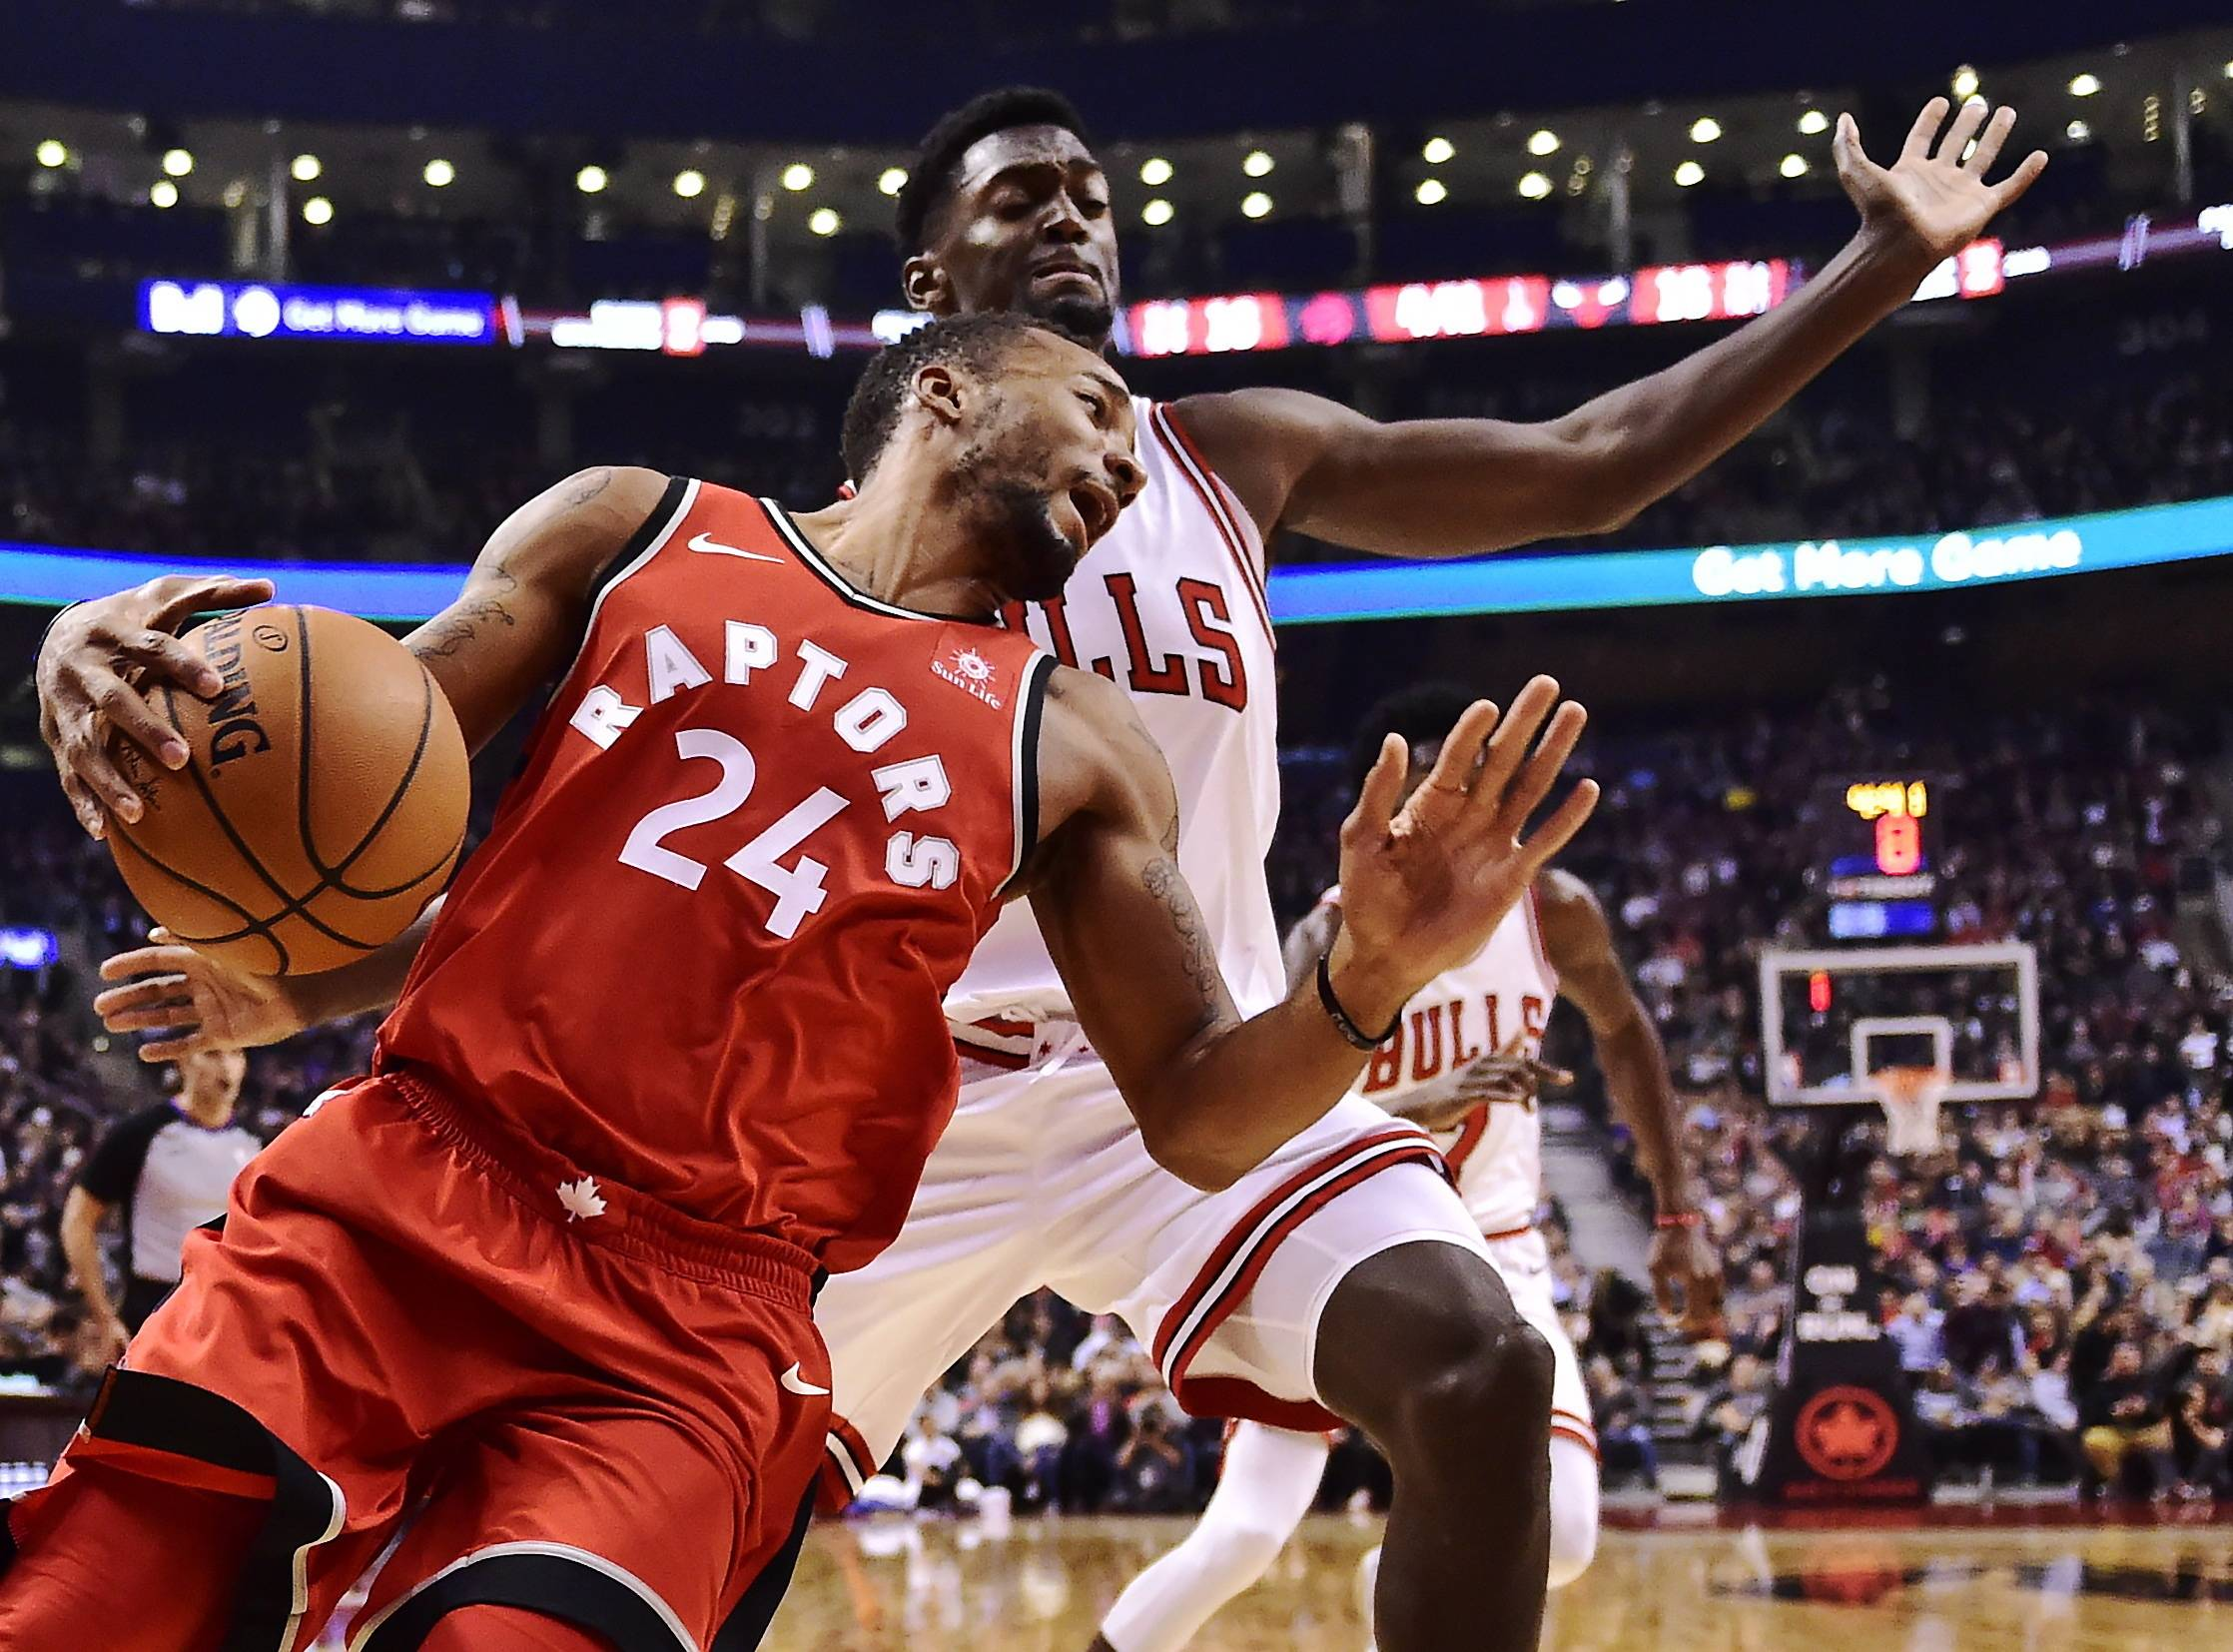 Toronto Raptors forward Norman Powell (24) tries to get past Chicago Bulls forward Bobby Portis (5) during the first half of an NBA basketball game, Tuesday, Nov. 7, 2017 in Toronto. (Frank Gunn/The Canadian Press via AP)